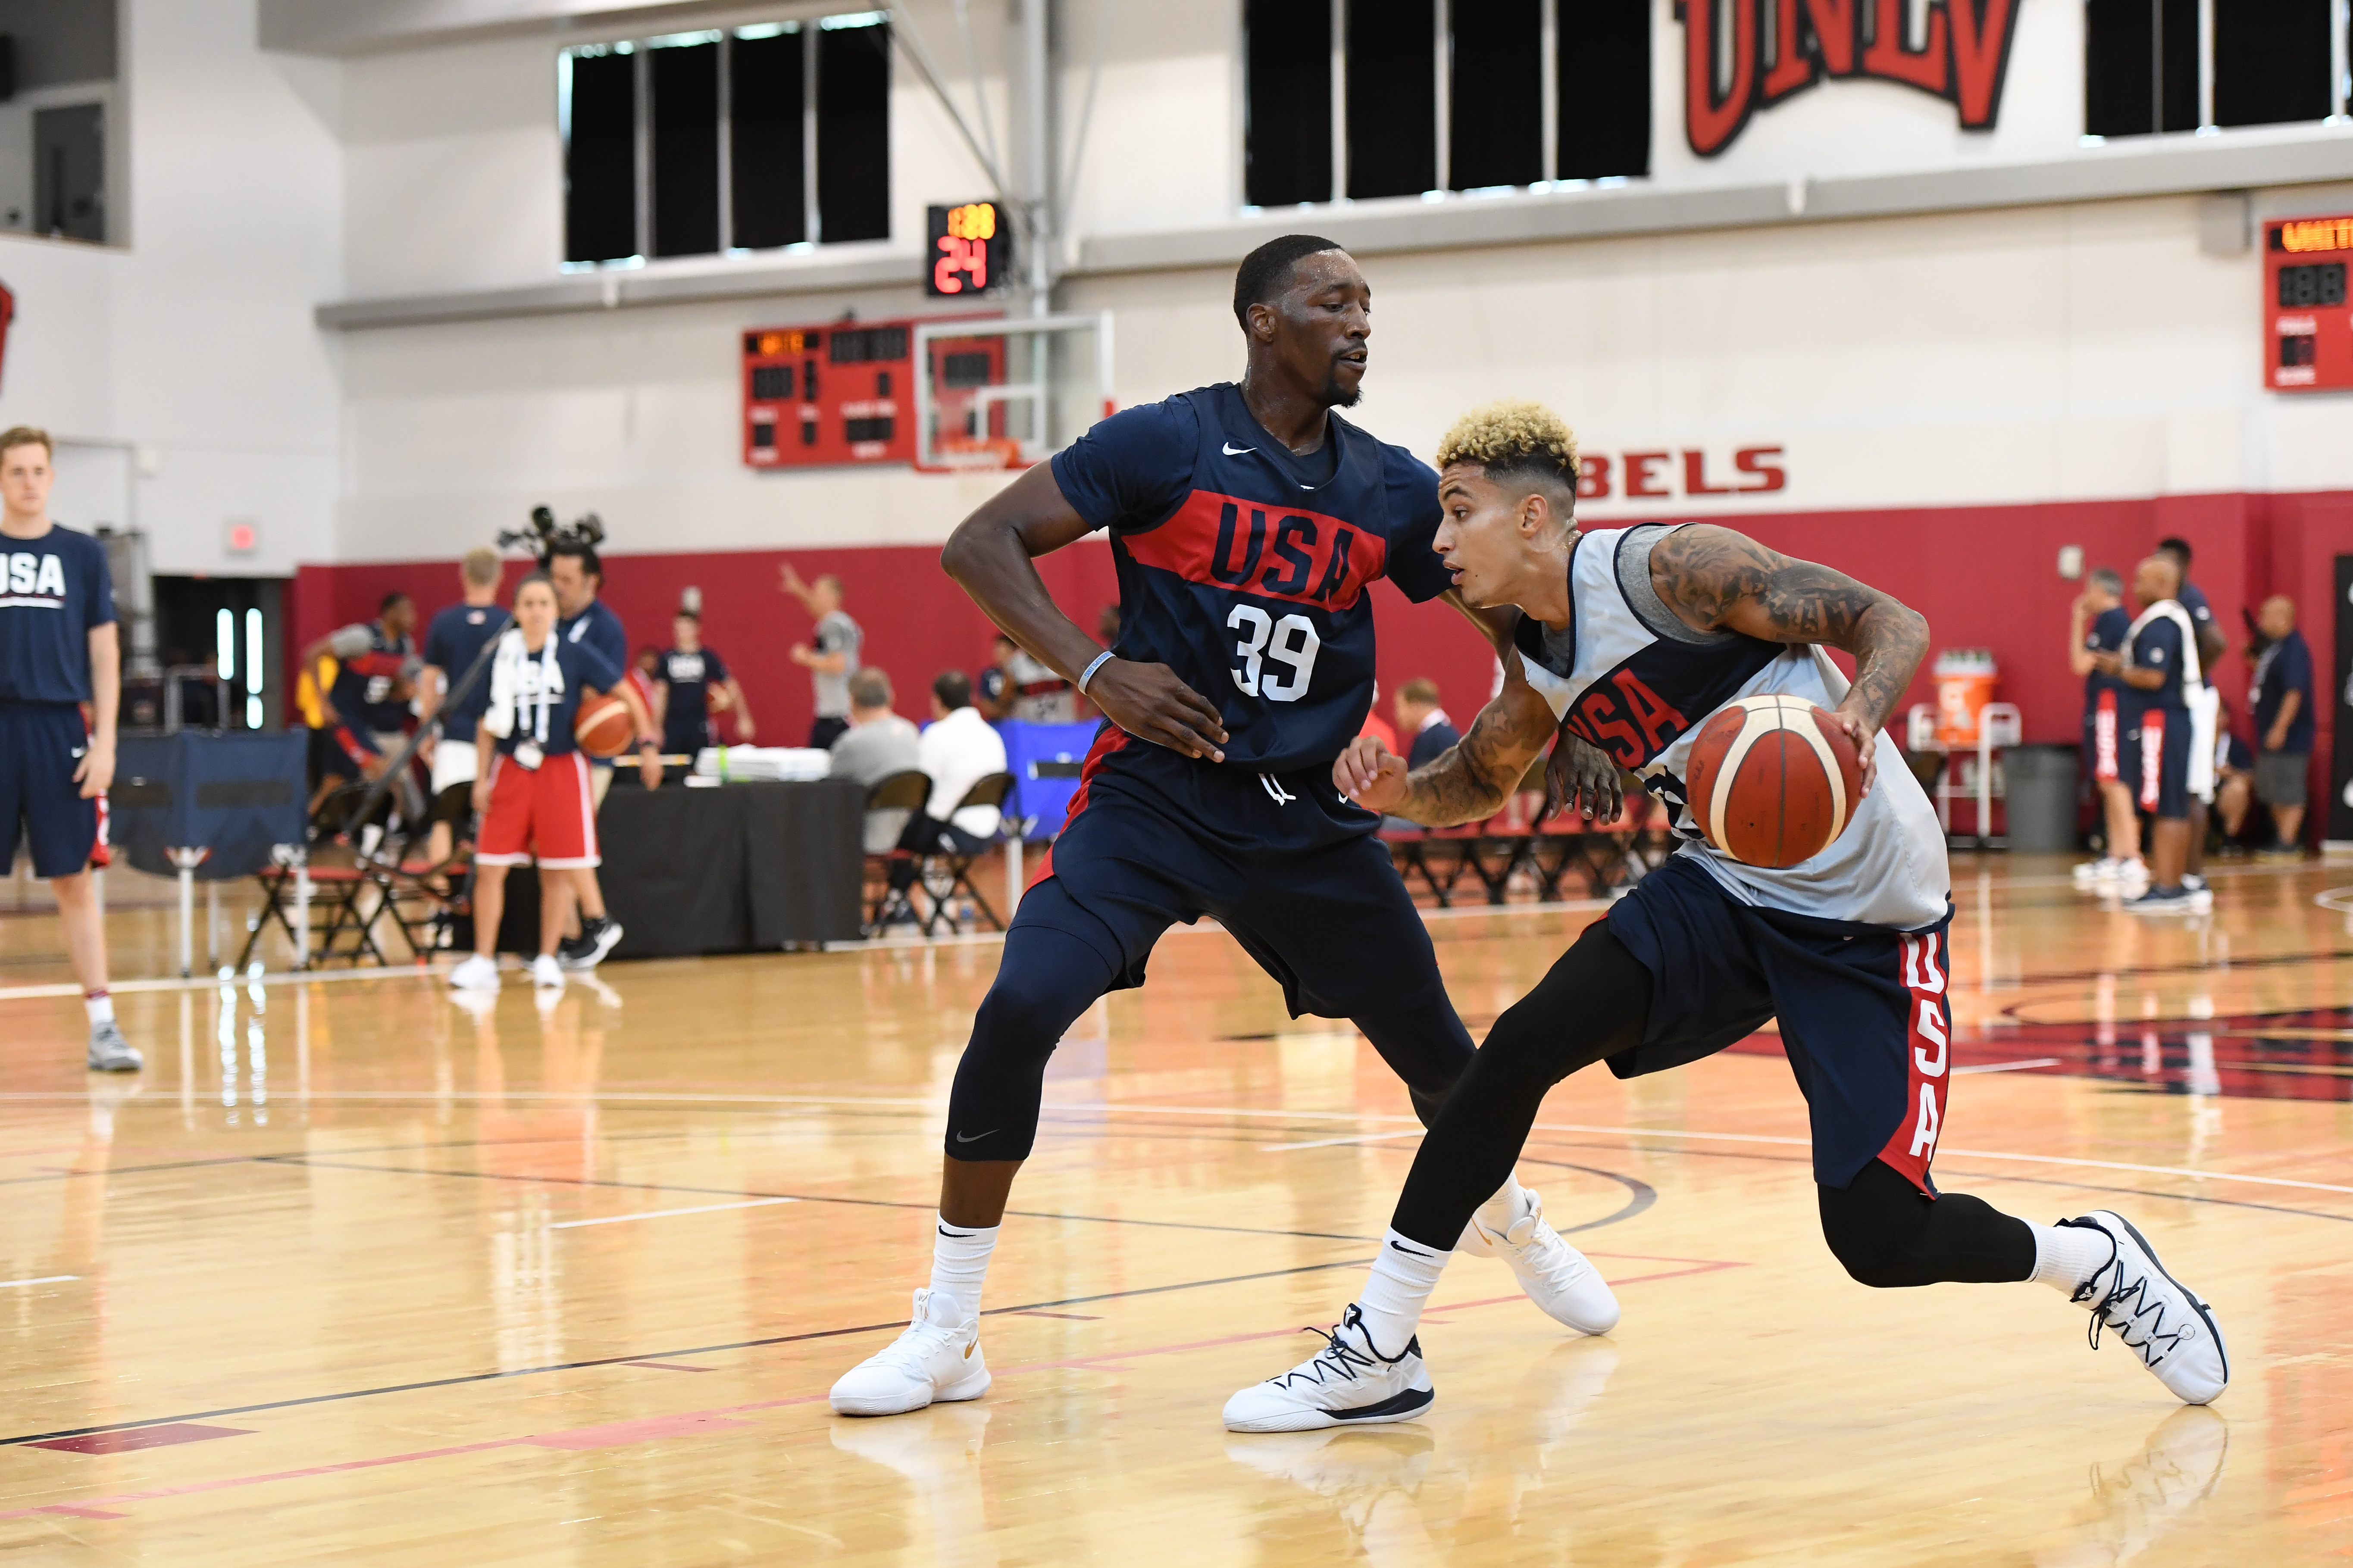 2019 USA Basketball Men's National Team Training Camp